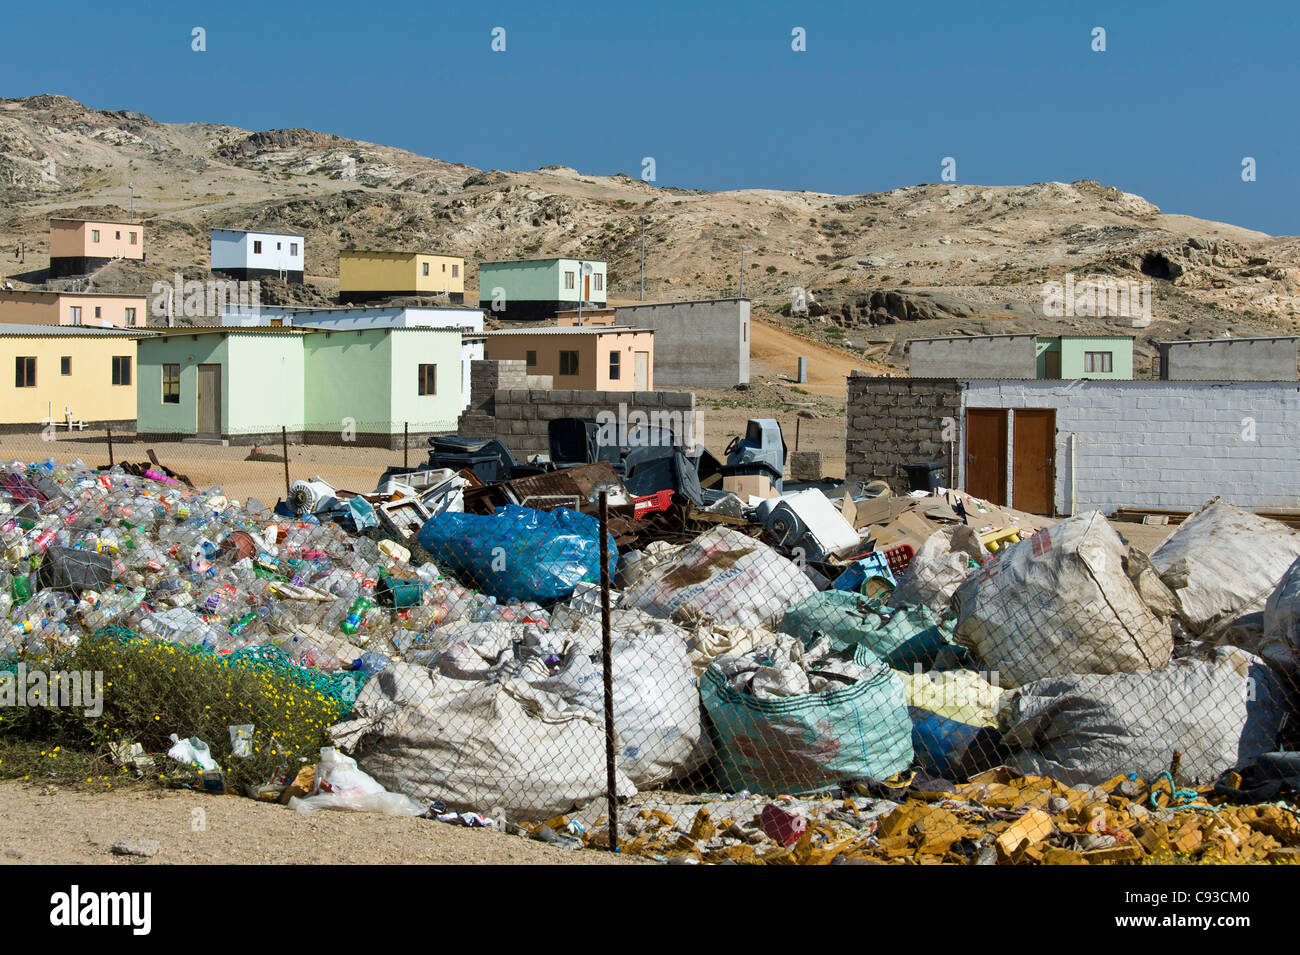 Garbage collection in a new housing area on the outskirts of Luederitz Namibia - Stock Image